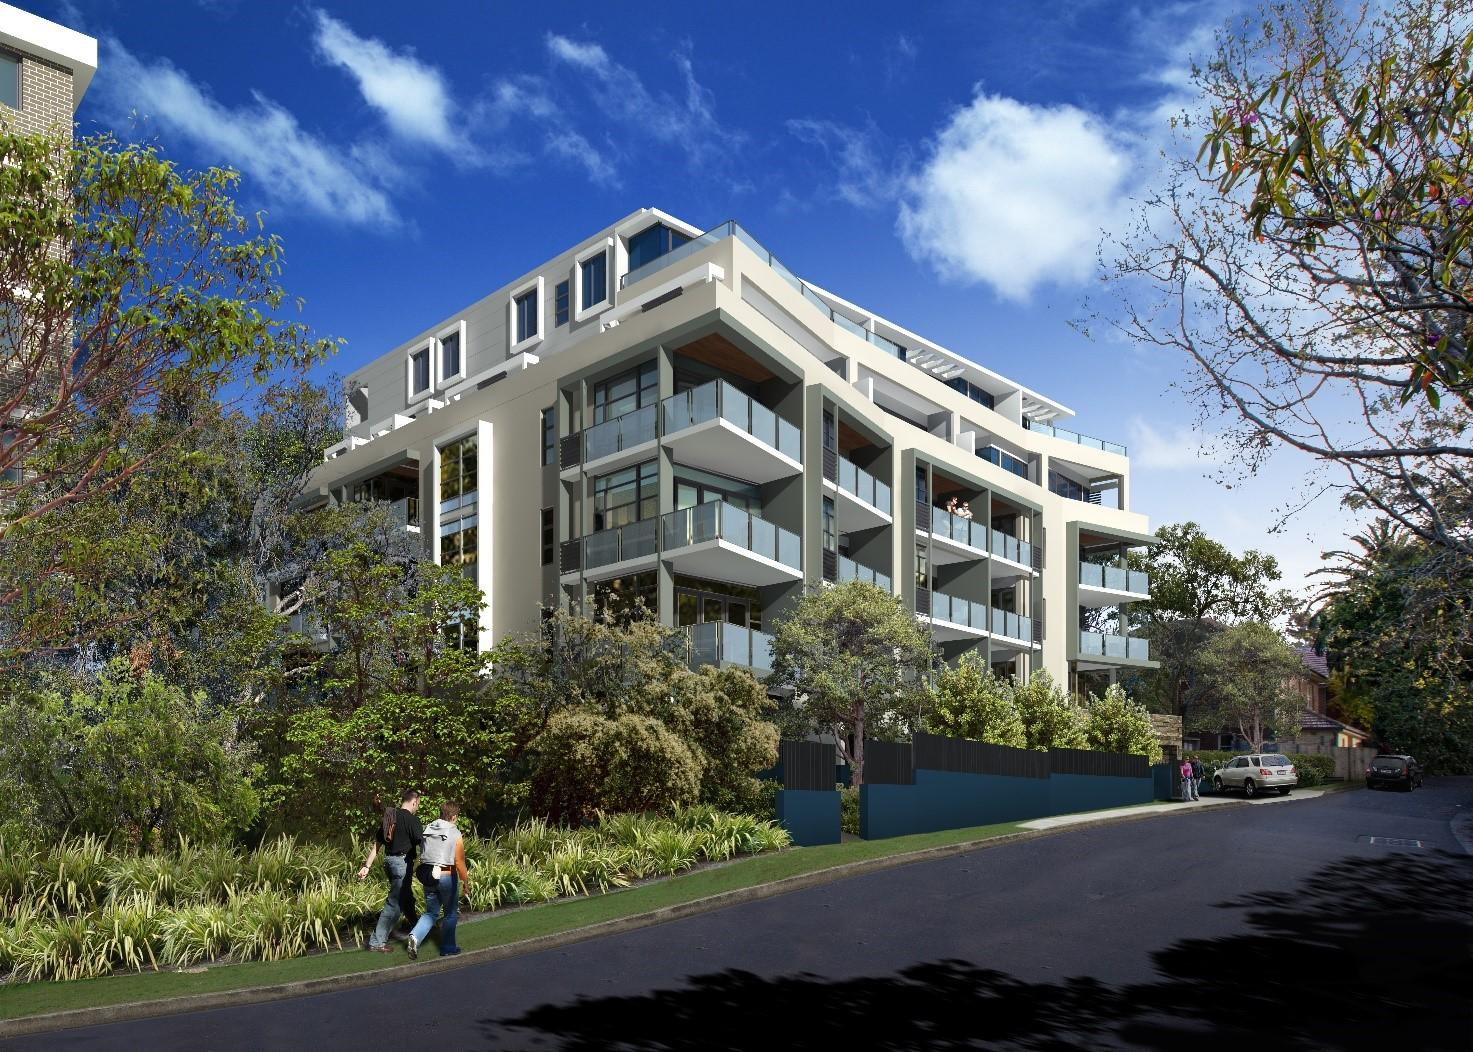 Lane Cove Apartments Eci Agreement In Place Construction Profile